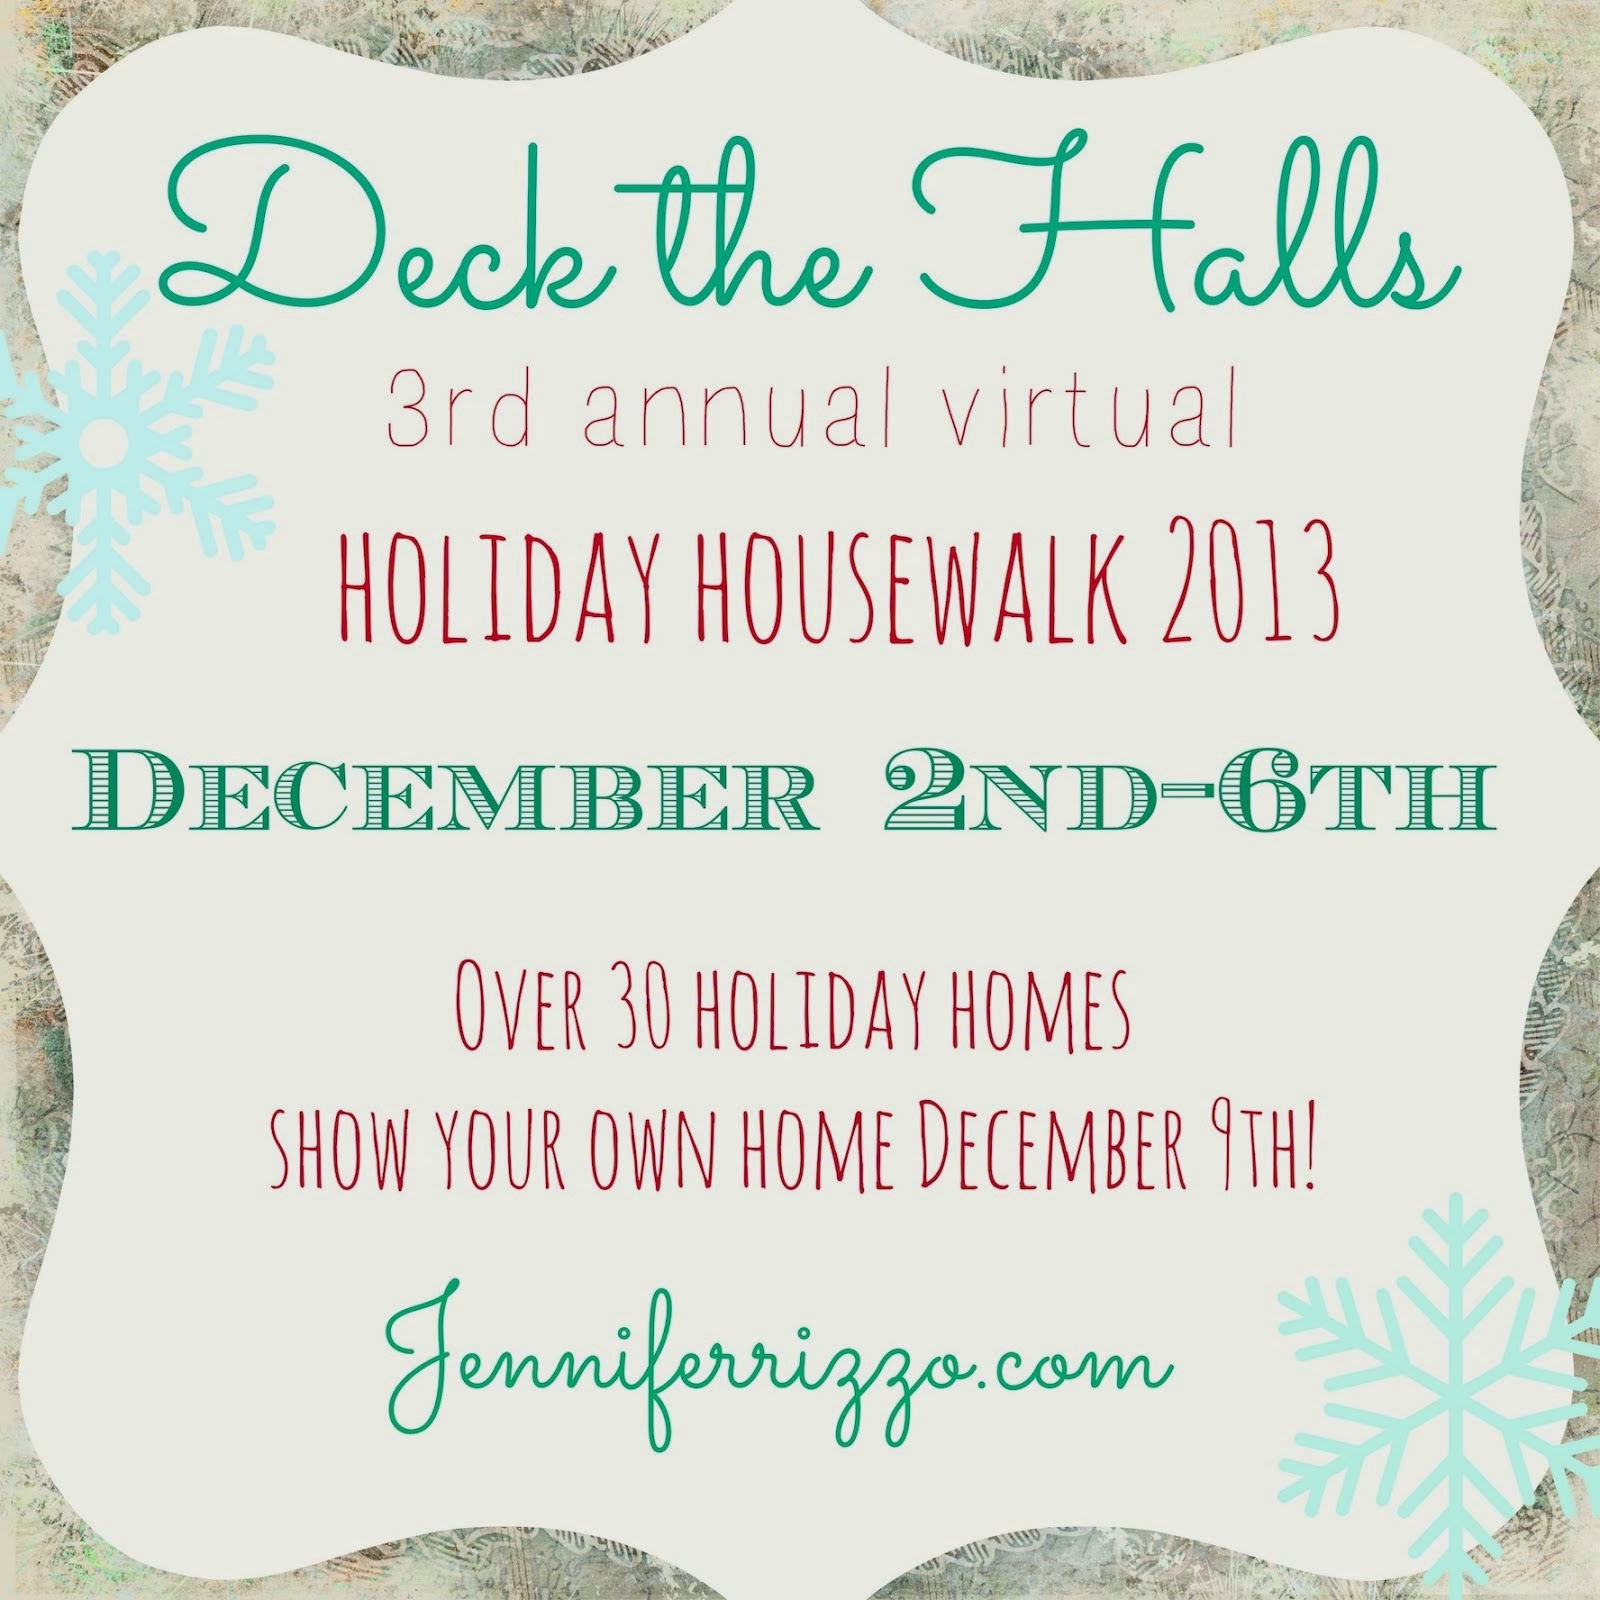 Deck the Halls Holiday House Walk